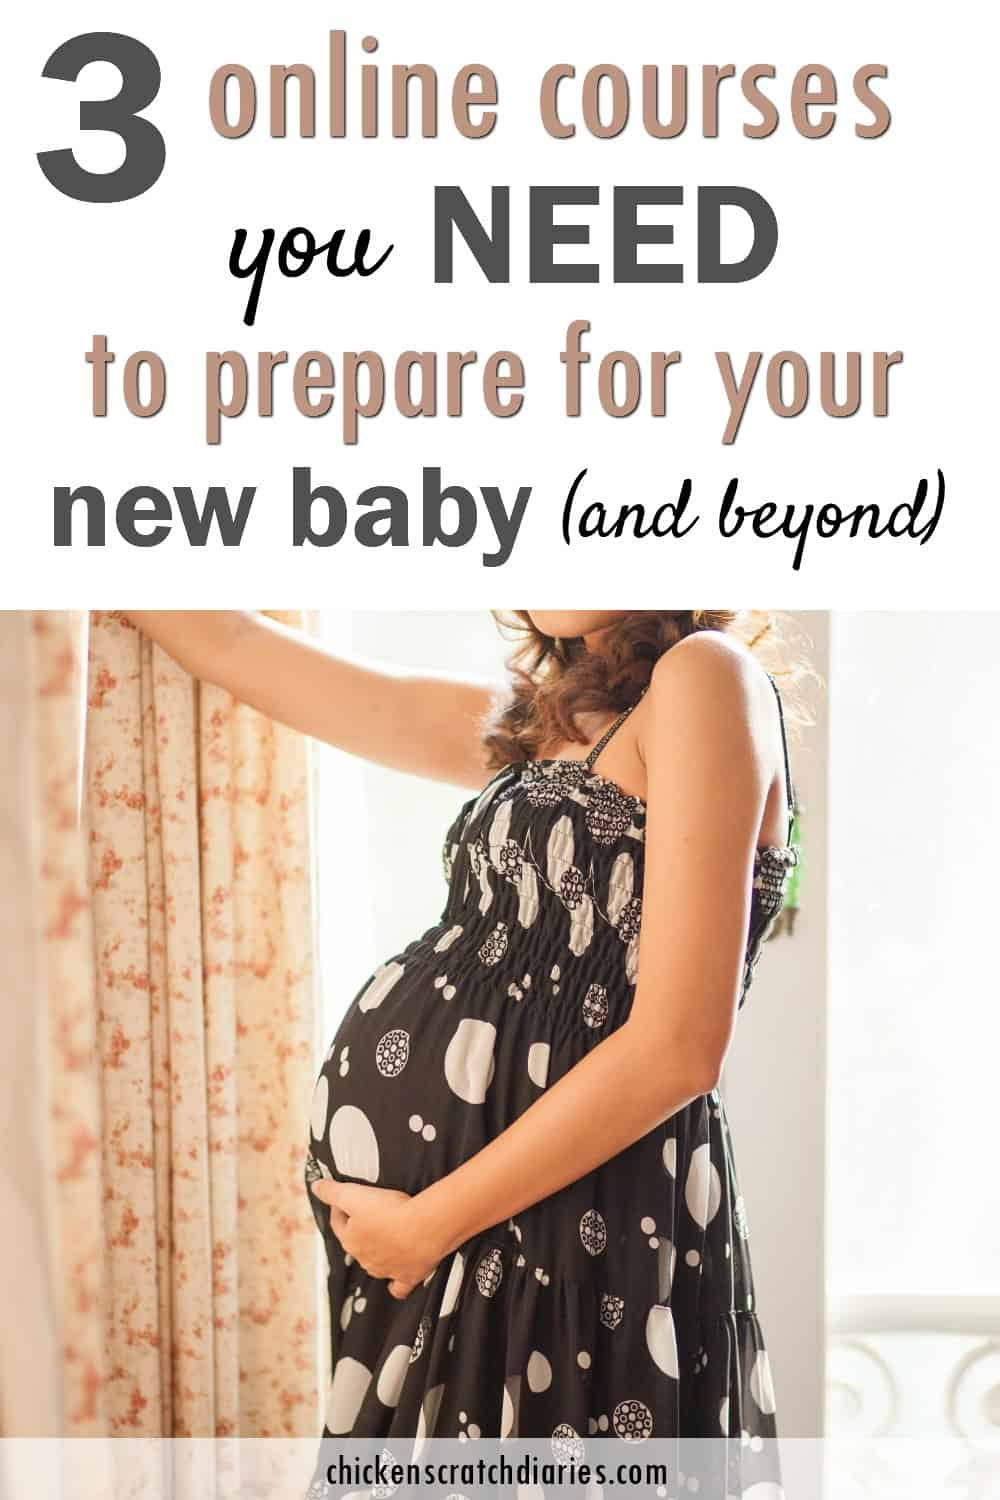 Preparing for Baby - the most important things you can do before baby arrives. Everything you need to know is included in these 3 courses! #Pregnancy #Newborn #Childbirth #Breastfeeding #BabySleep #Prenatal